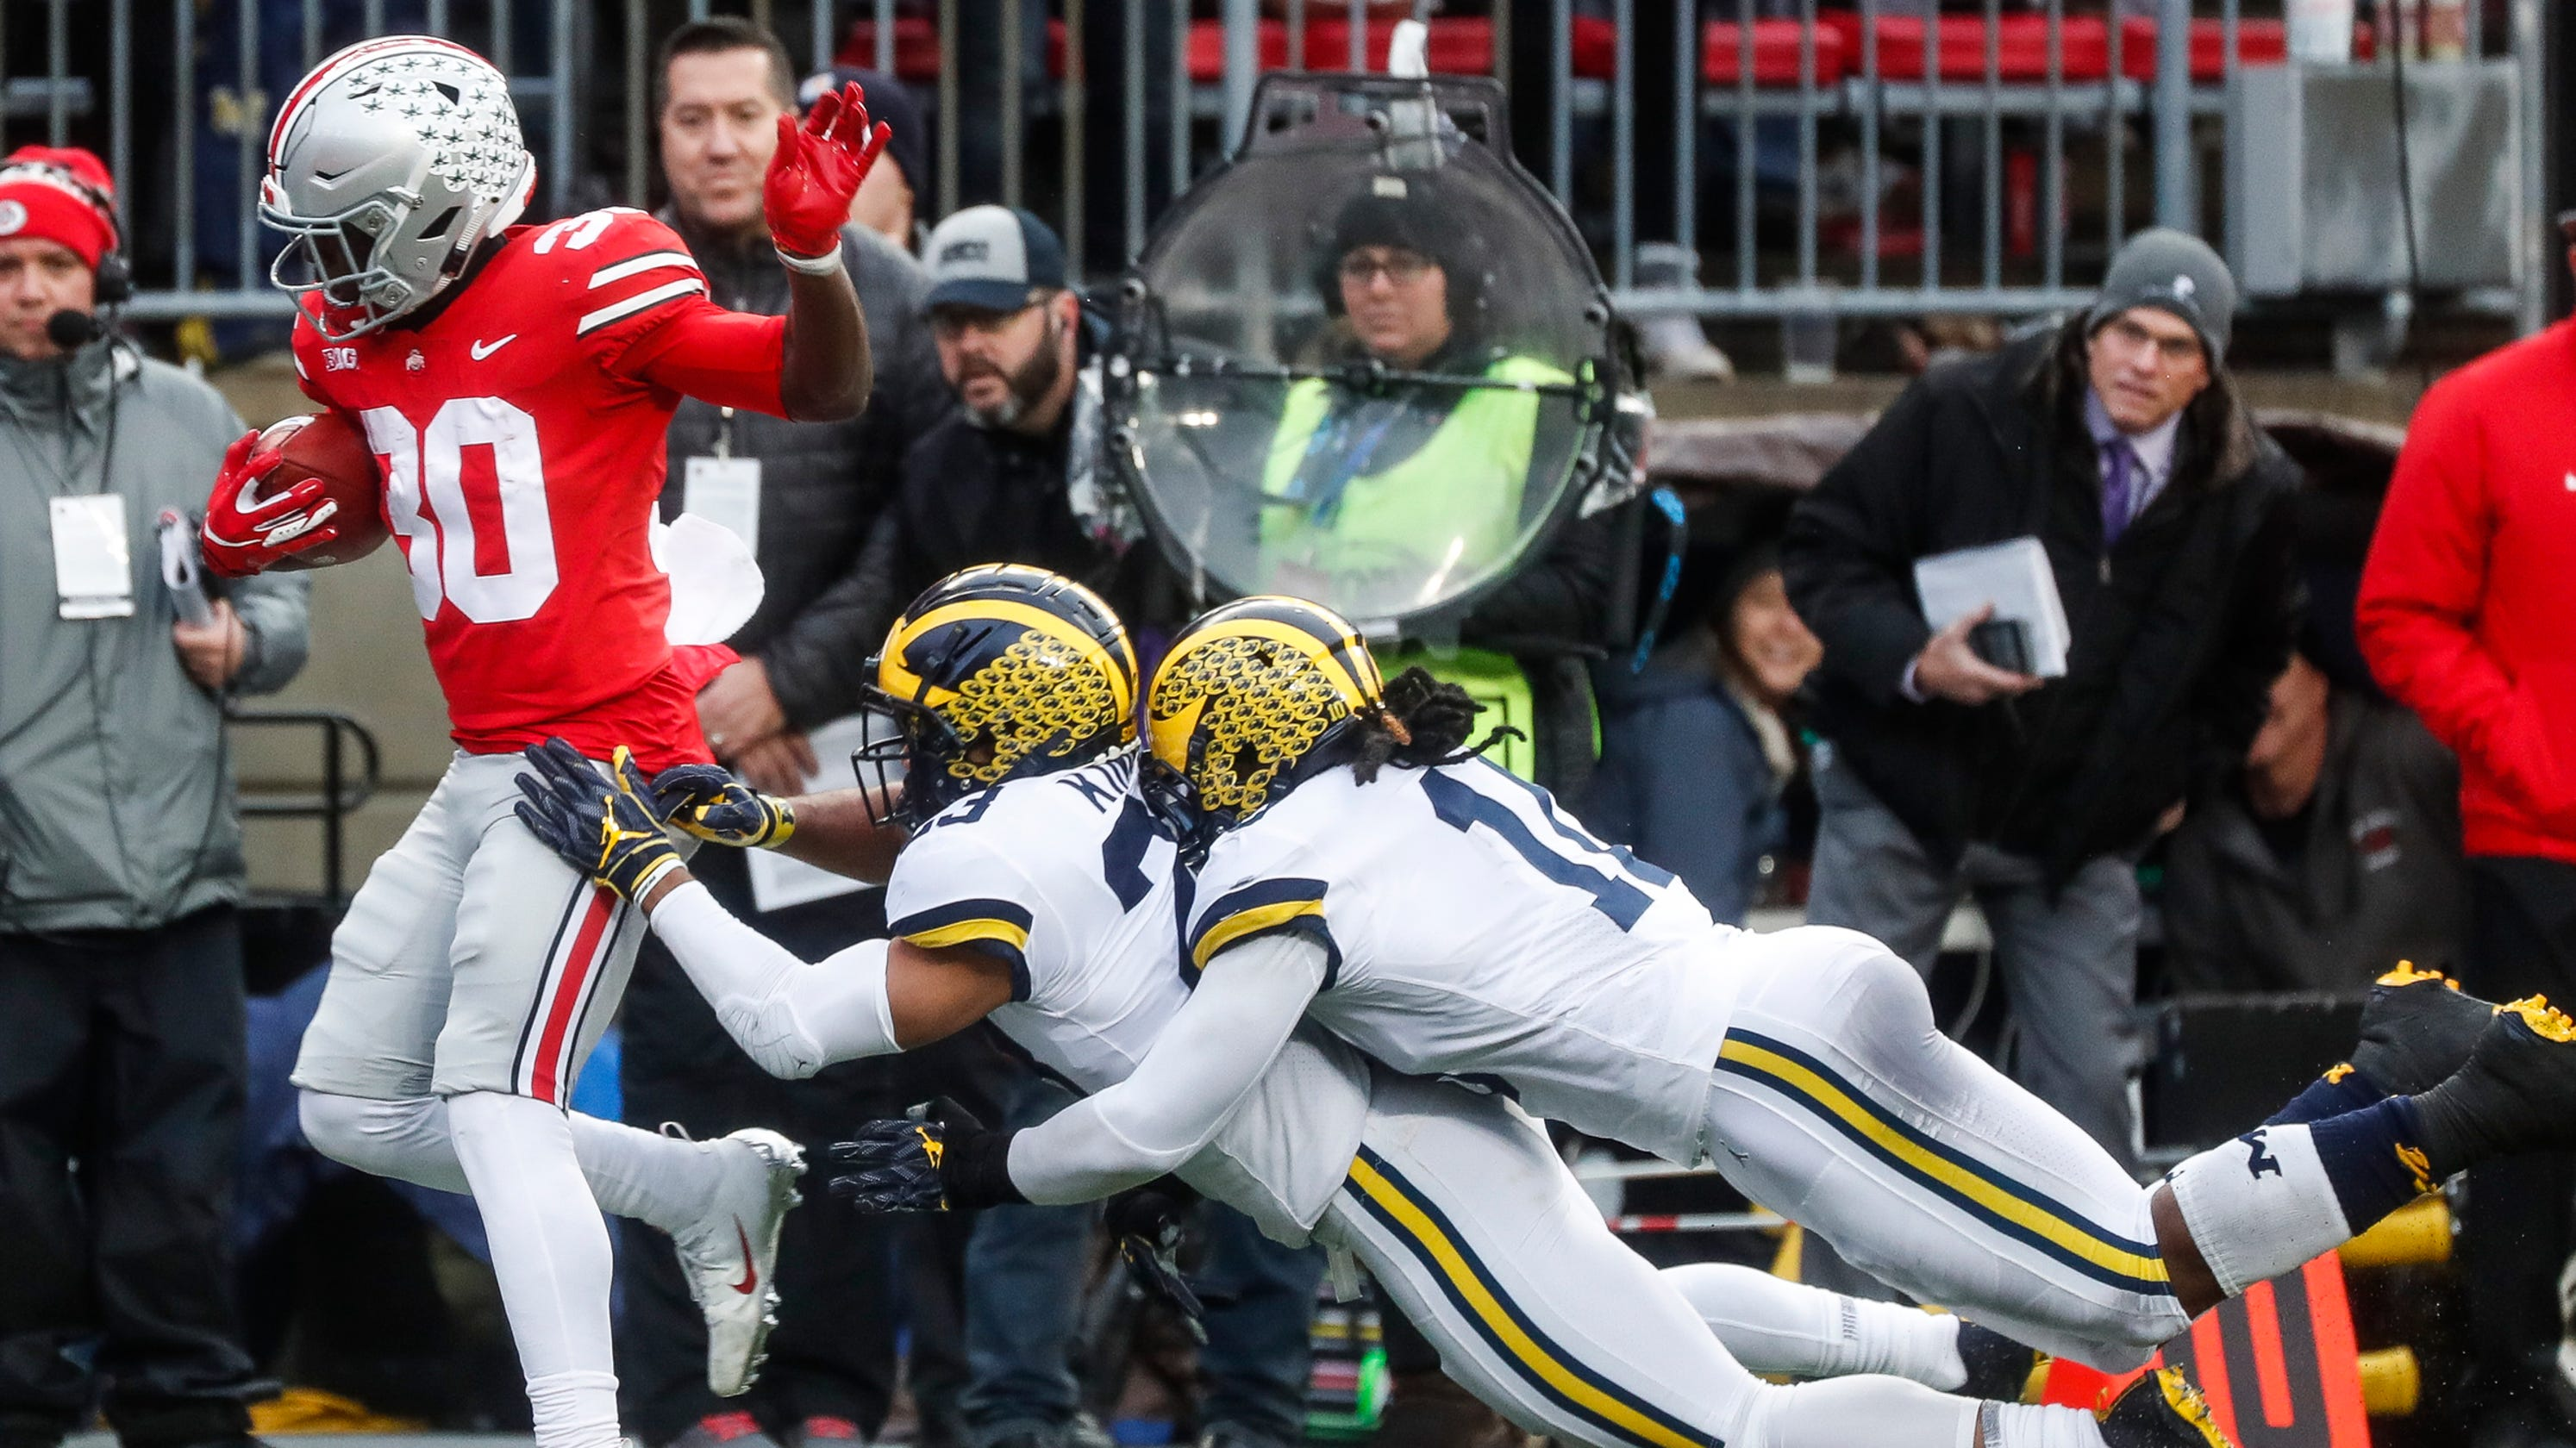 602afc418c8 Michigan football outclassed in historic loss to Ohio State